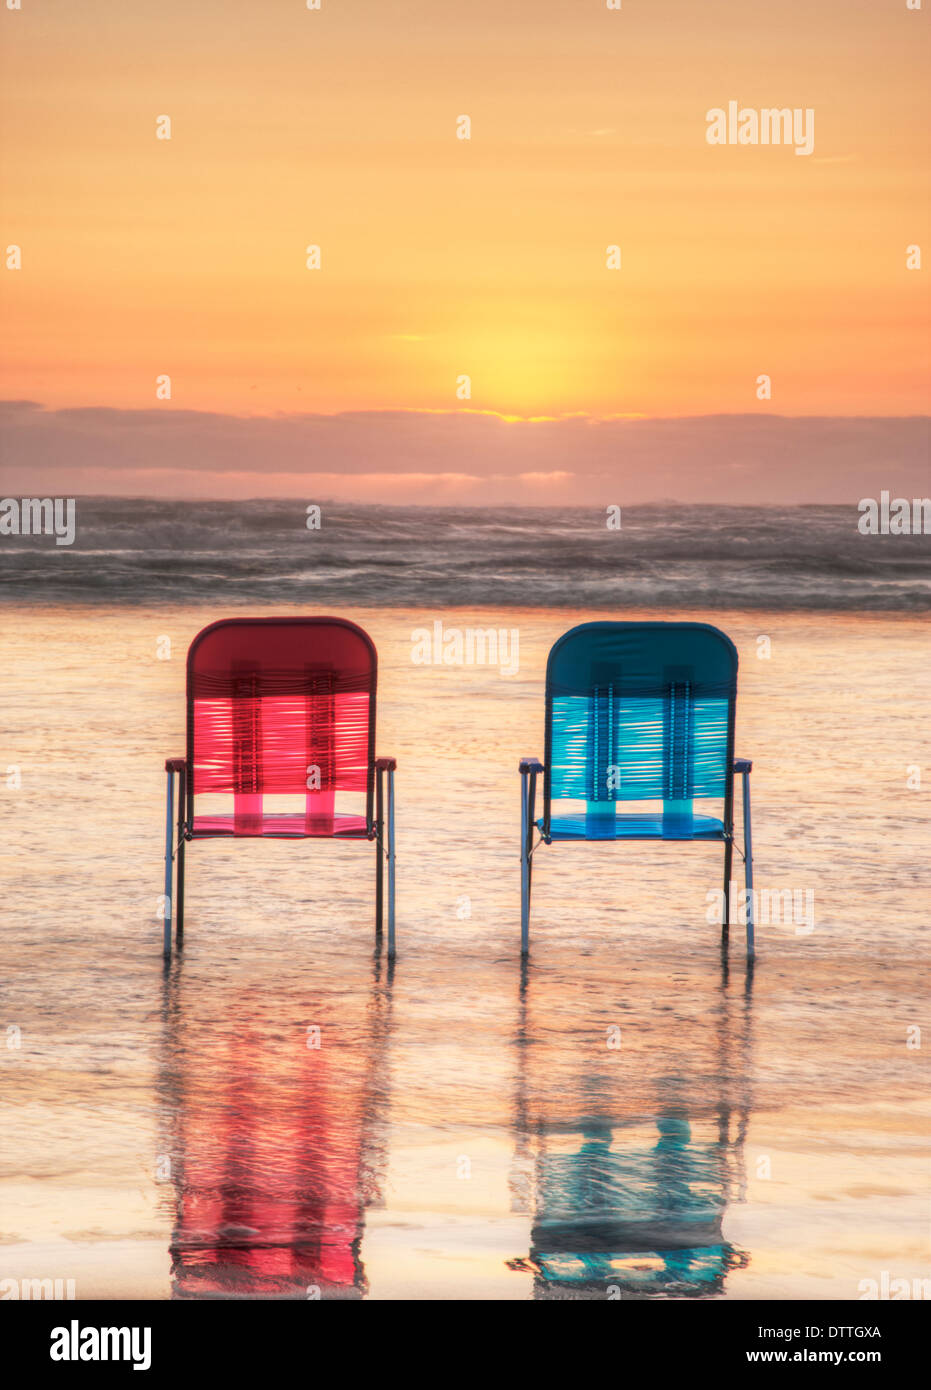 Lawn chairs in waves on beach at sunset - Stock Image